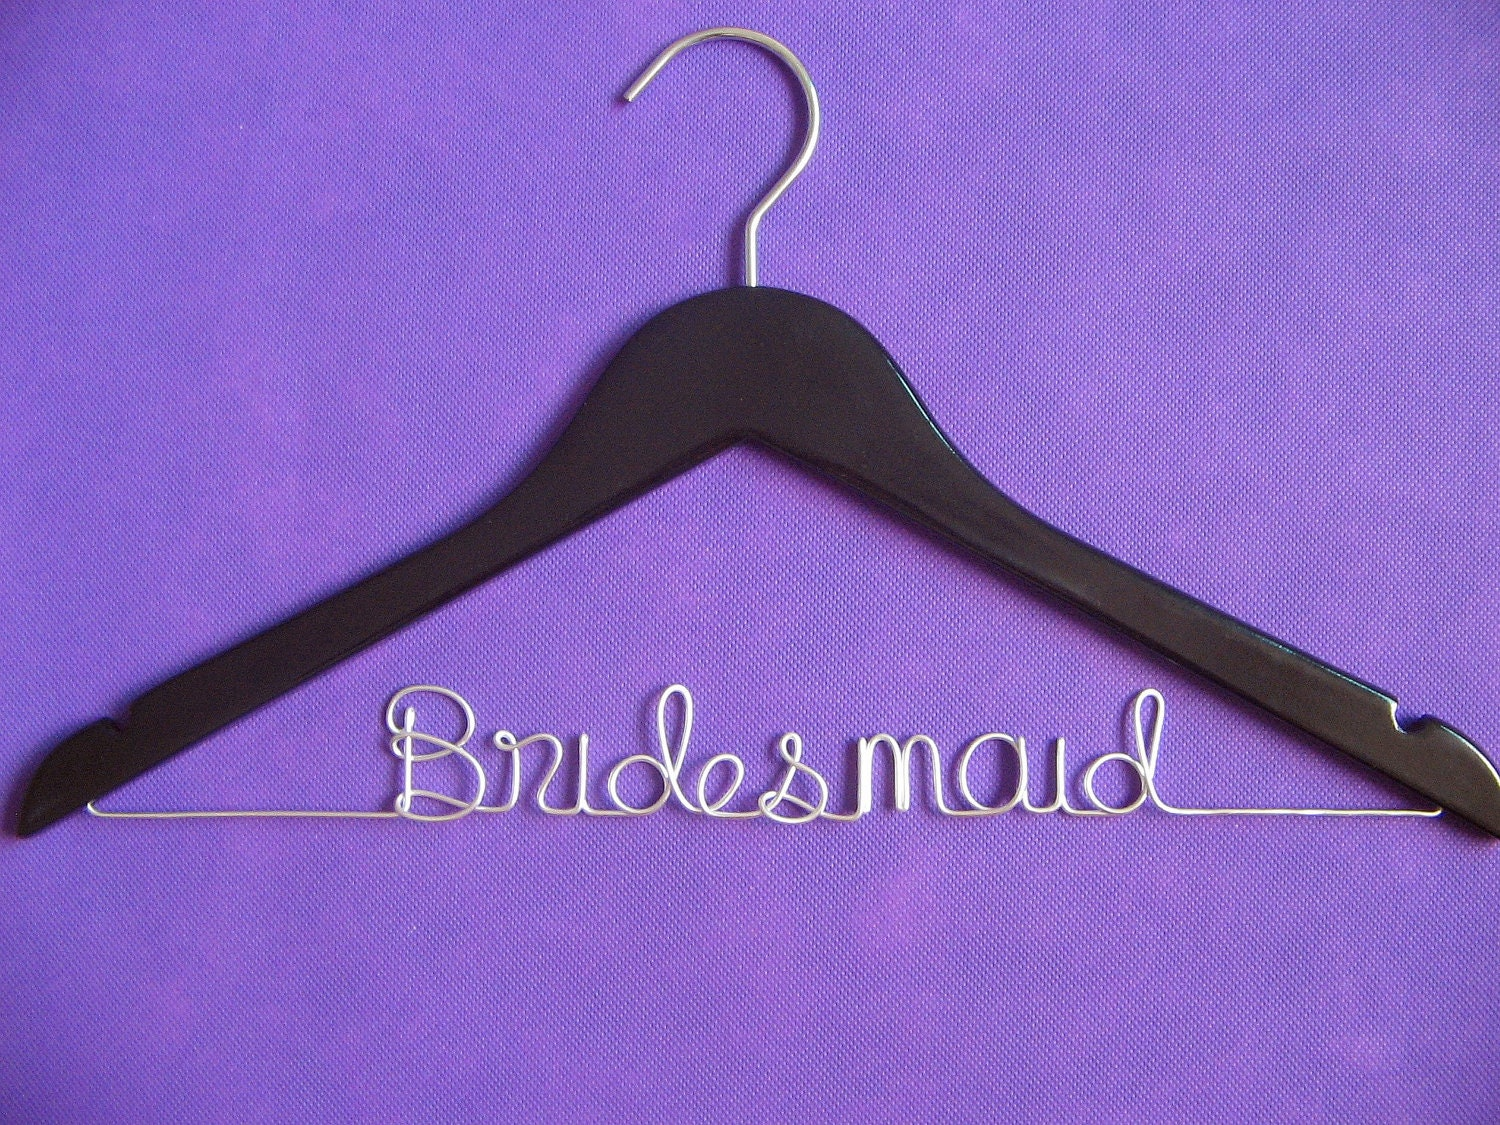 Personalized wedding dress hangerbridesmaid hanger name for Wedding dress hangers with name